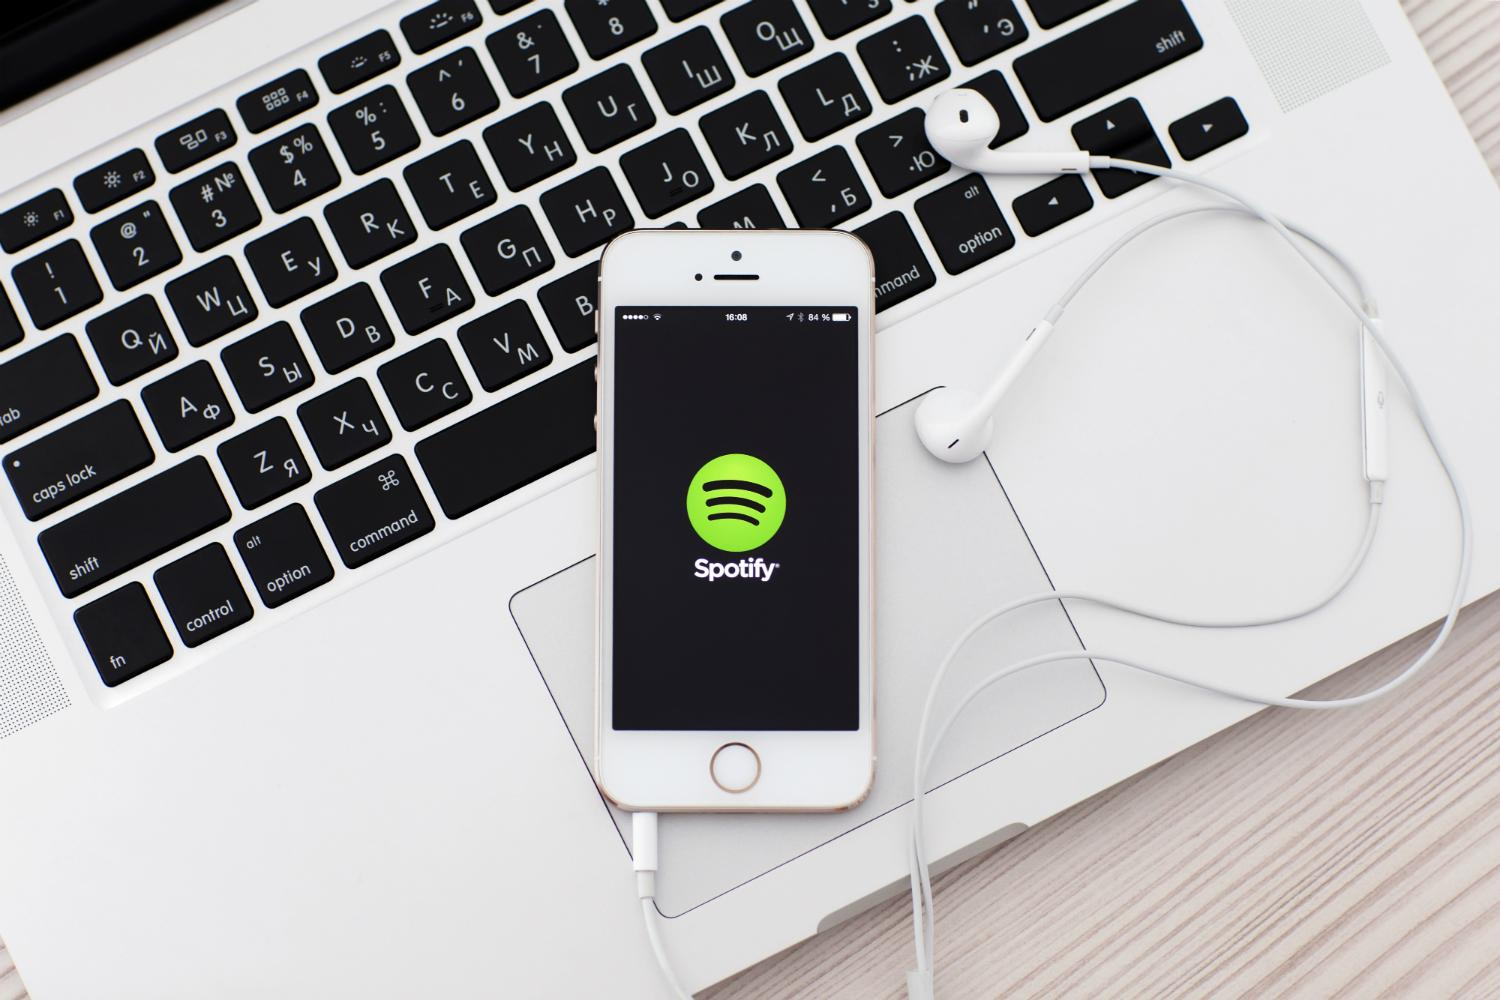 6 Spotify Hacks You Need to Know